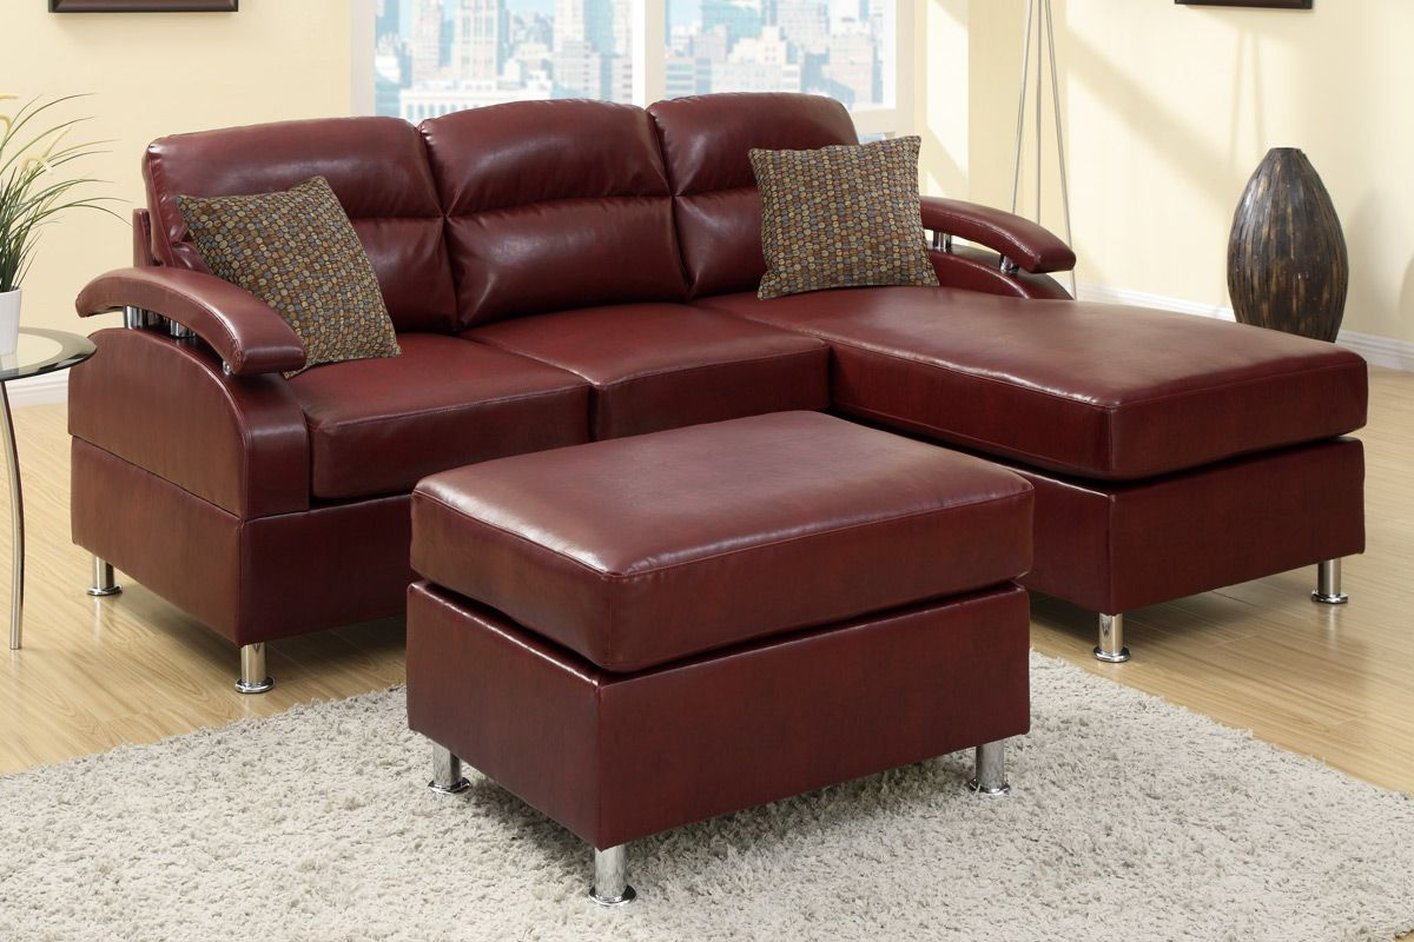 red leather chair and ottoman dining room chairs black poundex kade f7686 sectional sofa